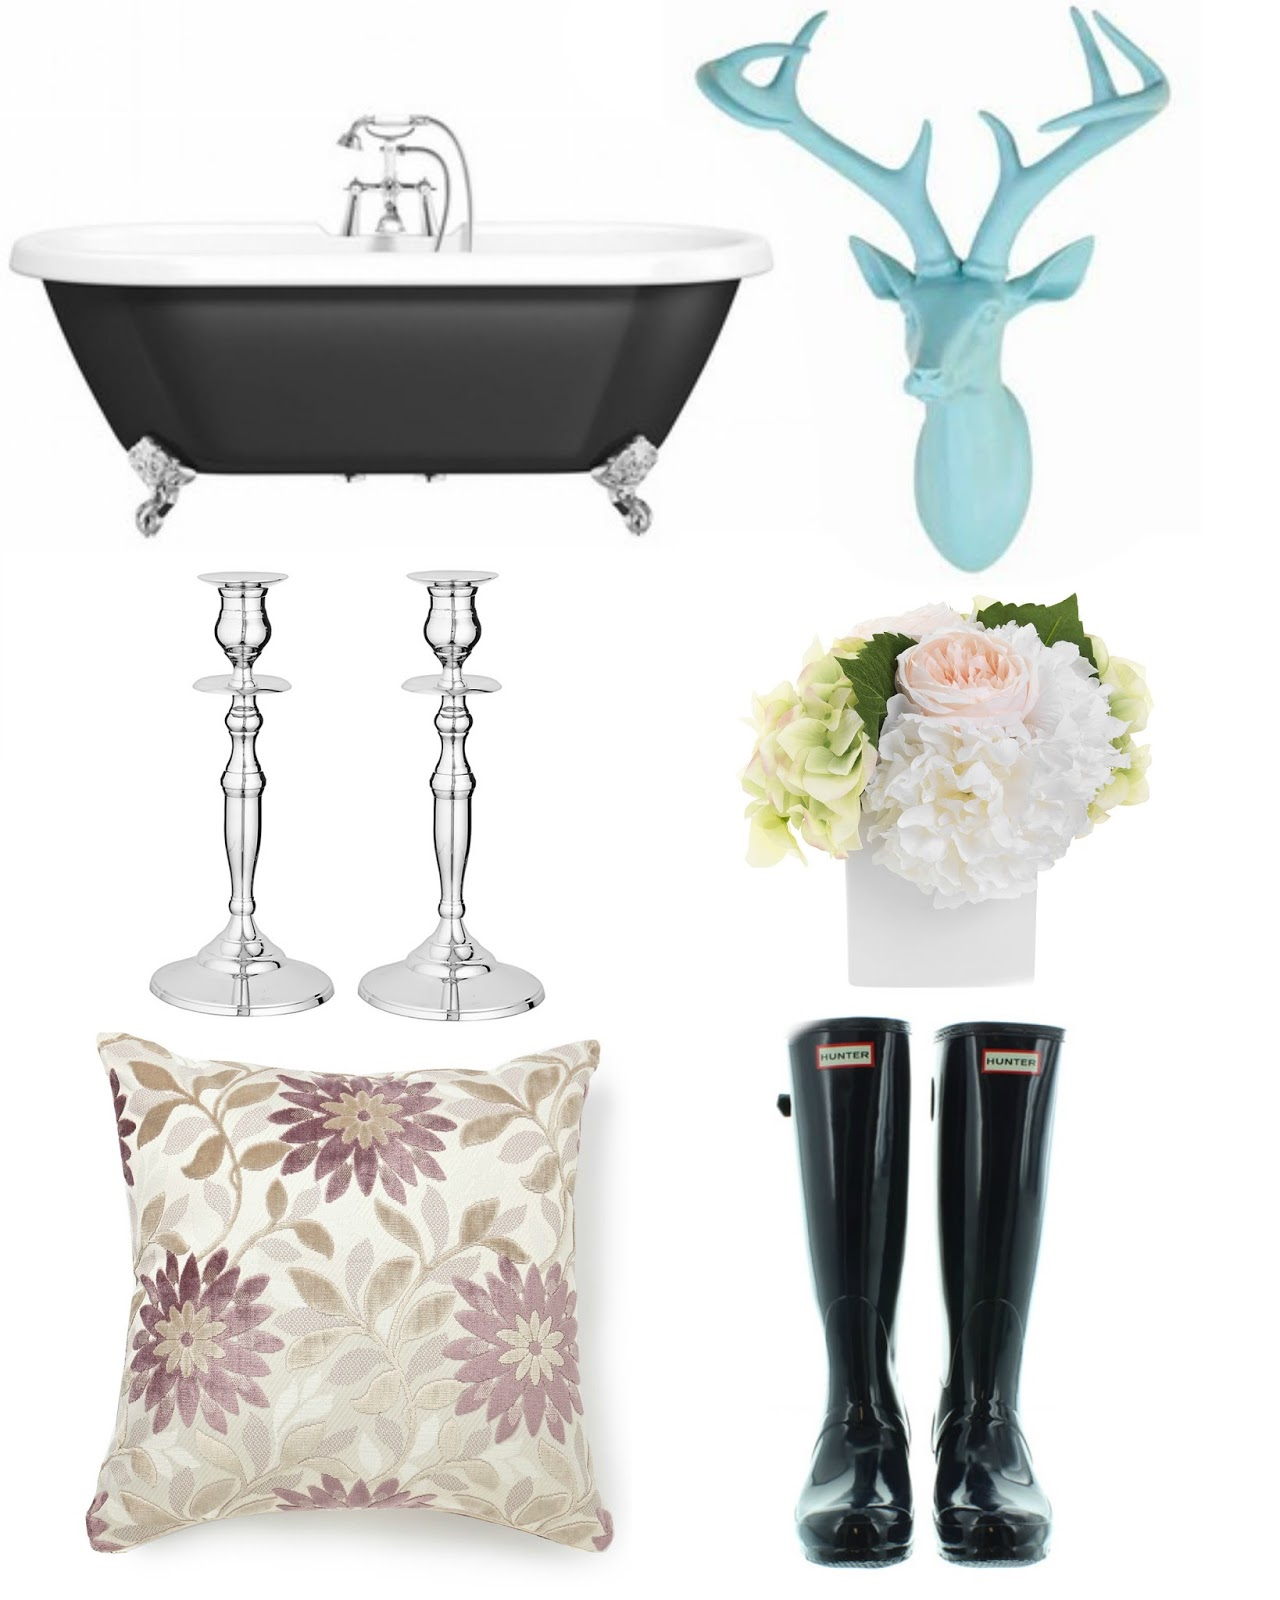 mamasVIB | V. I. BUYS: Babington House 15 ways to create the look at home {Staycation Style #1}